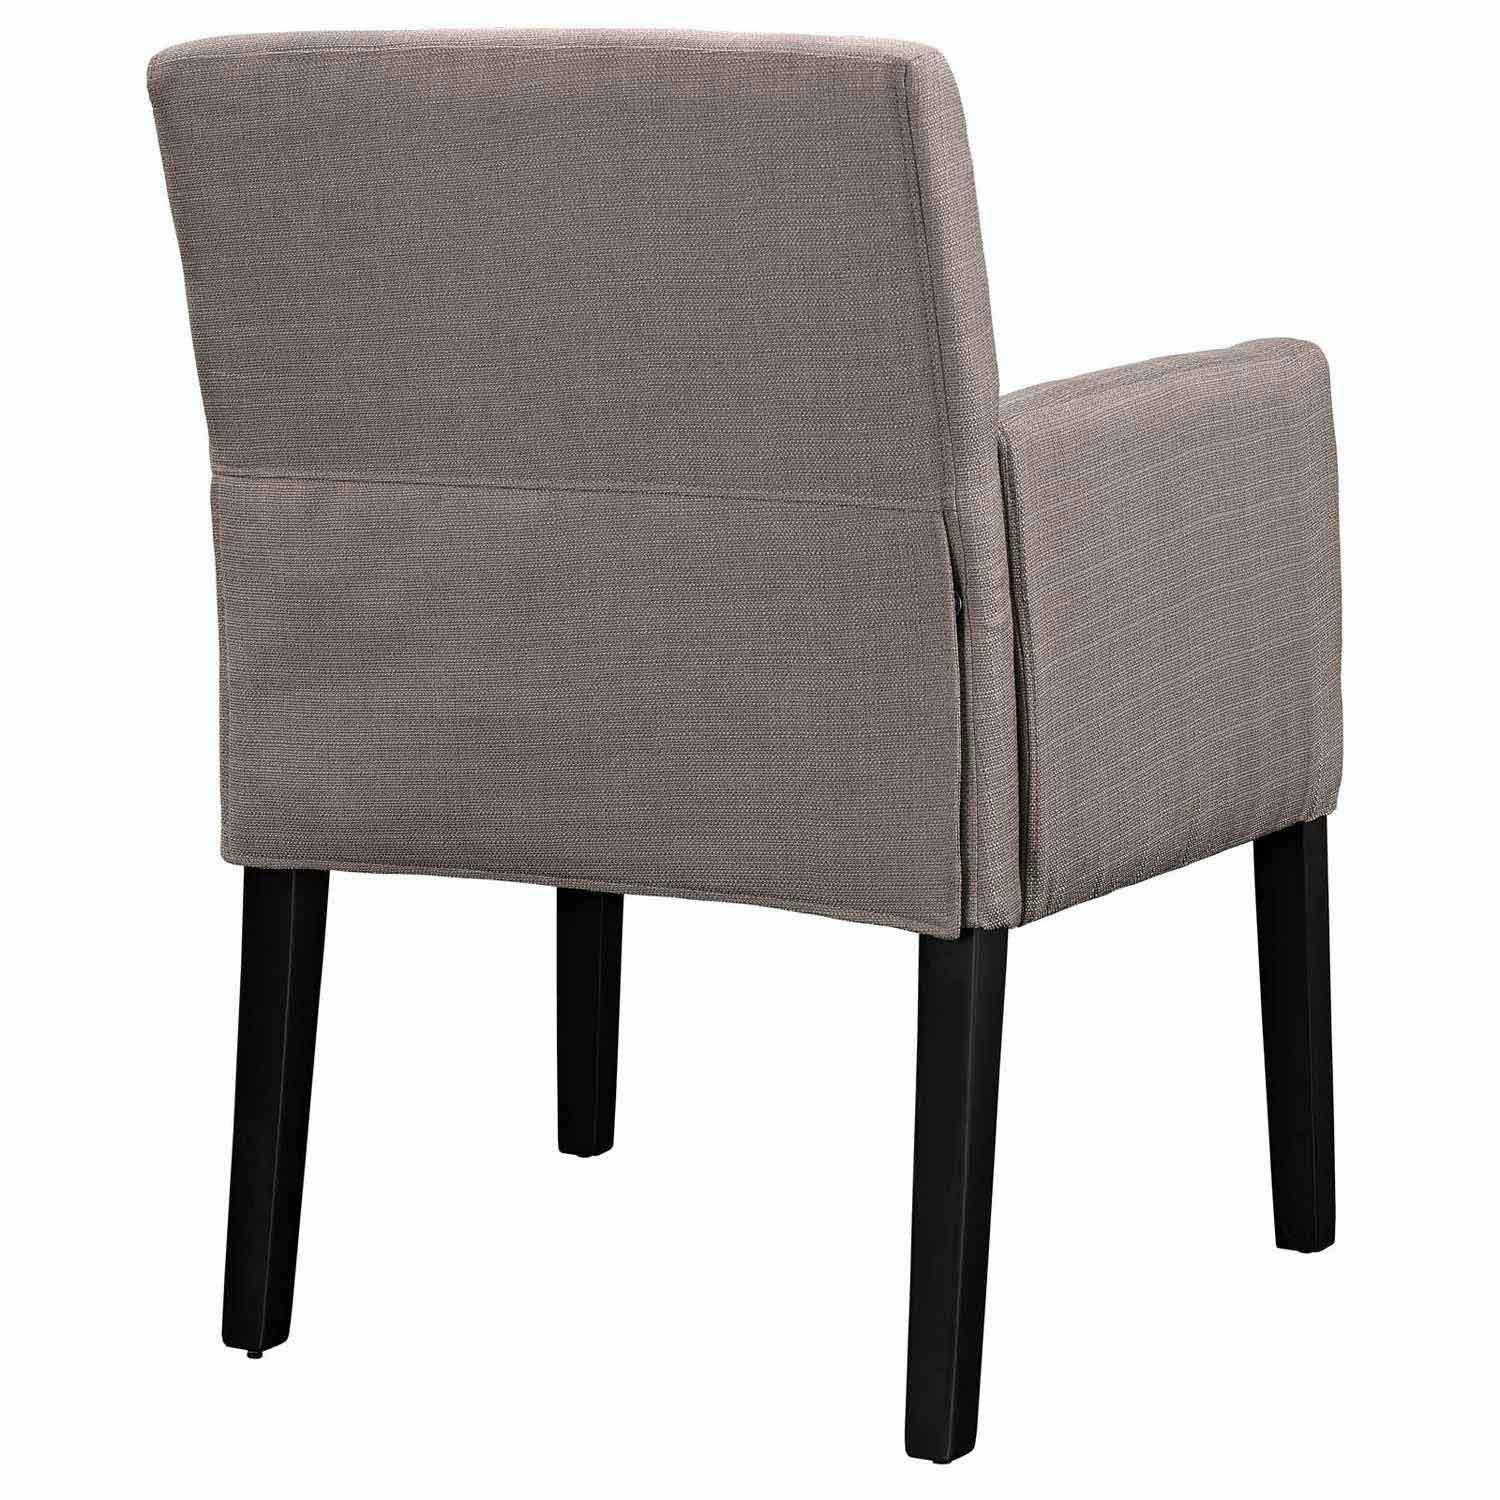 Modway Chloe Wood Armchair - Gray